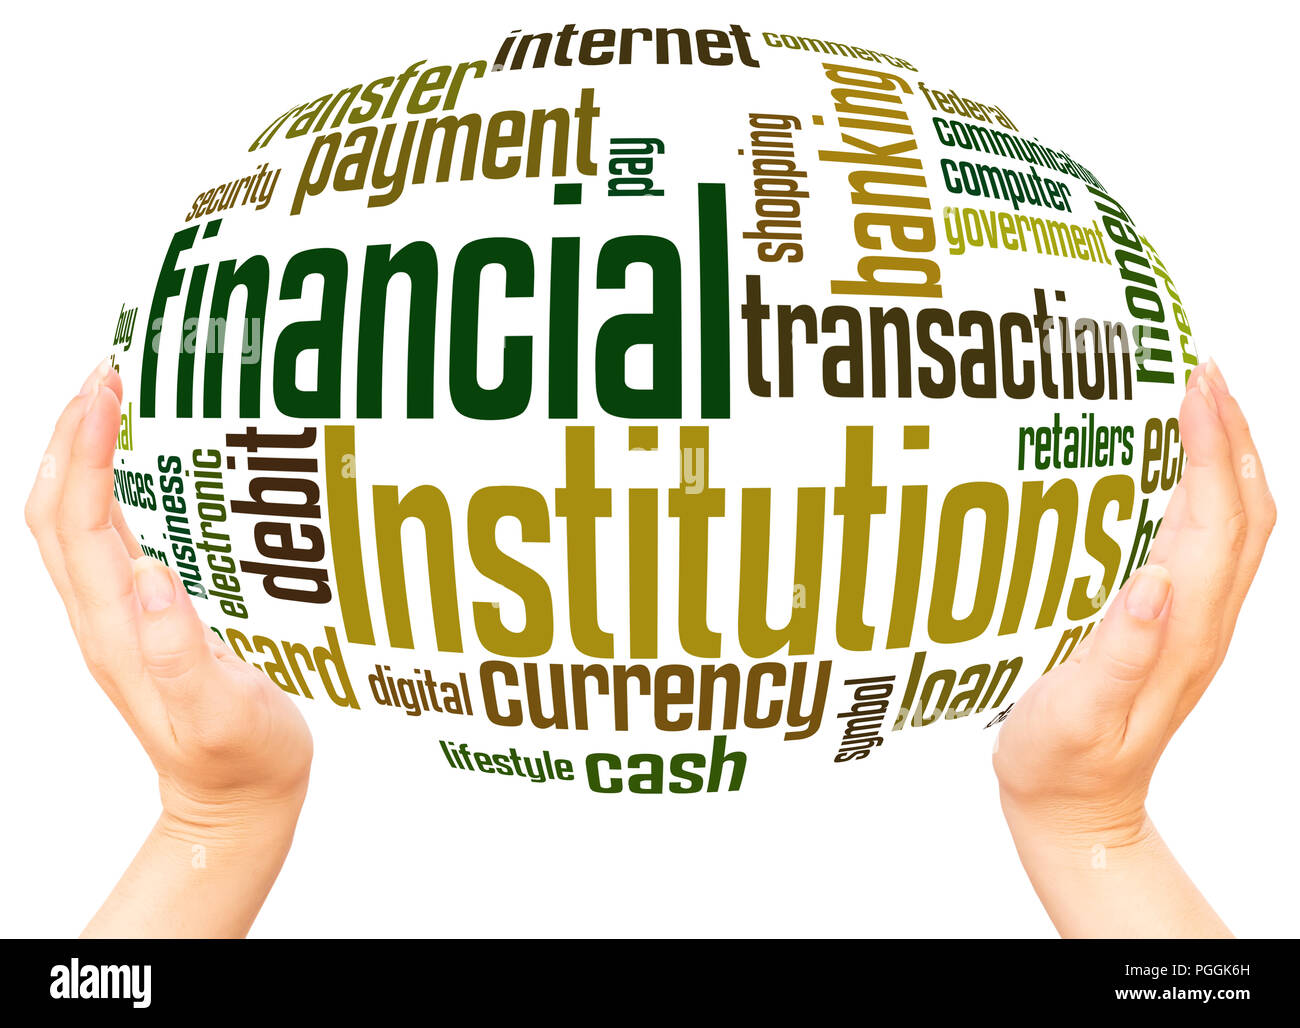 Financial Institutions word cloud hand sphere concept on white background. Stock Photo